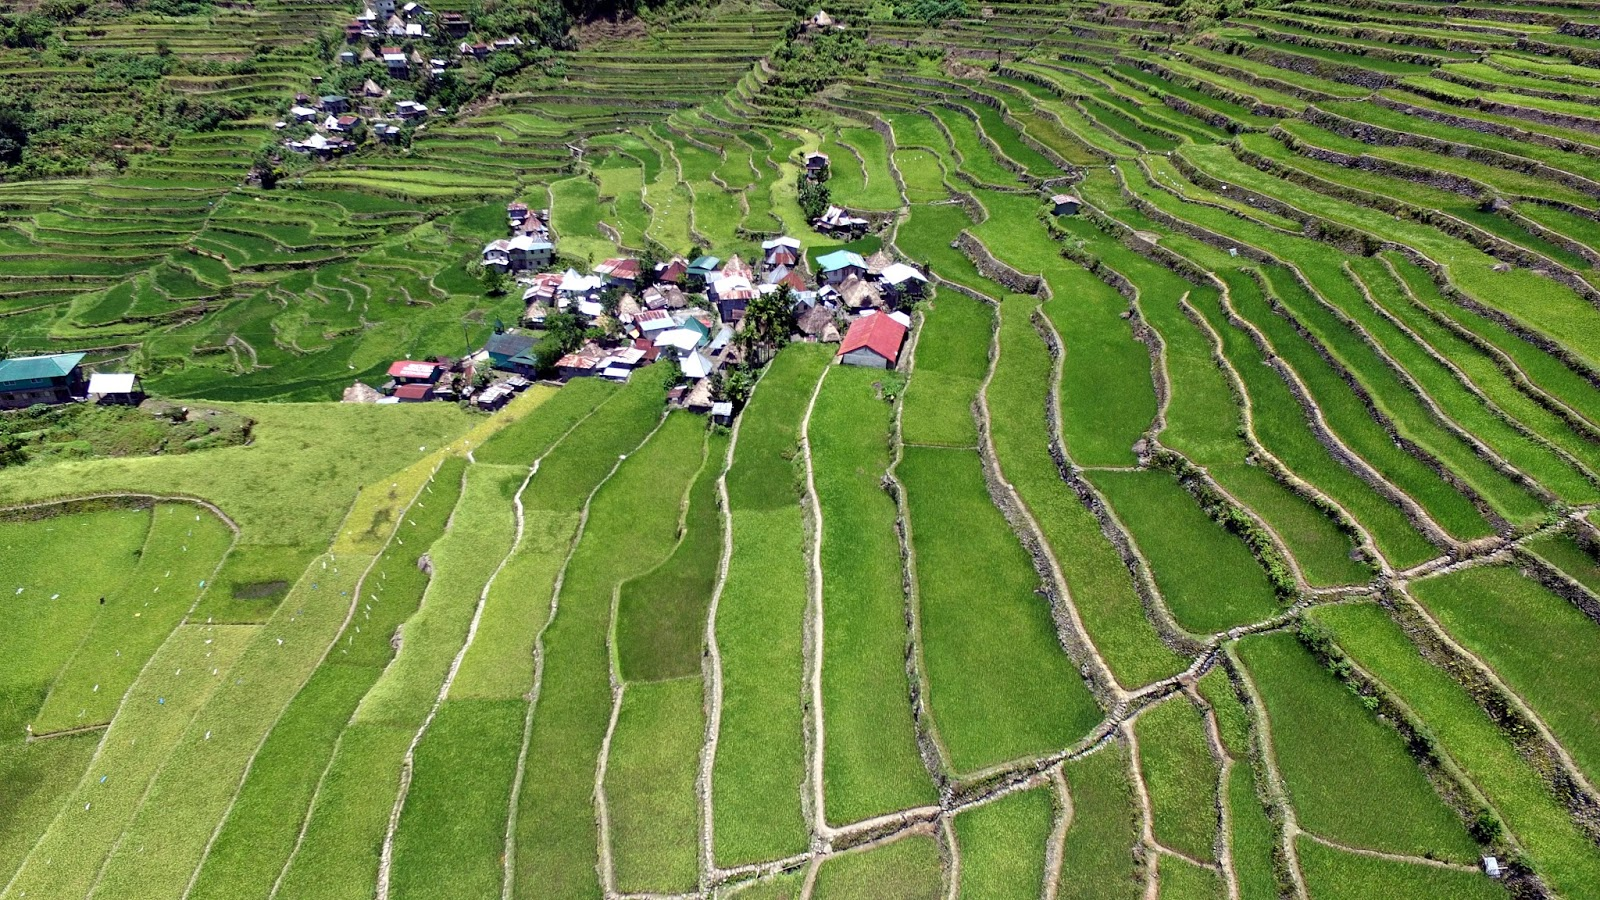 rice terraces in danger essay Cultural landscapes -- cultivated terraces on lofty mountains, gardens, sacred places  -- testify to the creative genius, social development and the imaginative and spiritual vitality of humanity they are part of our collective identity.